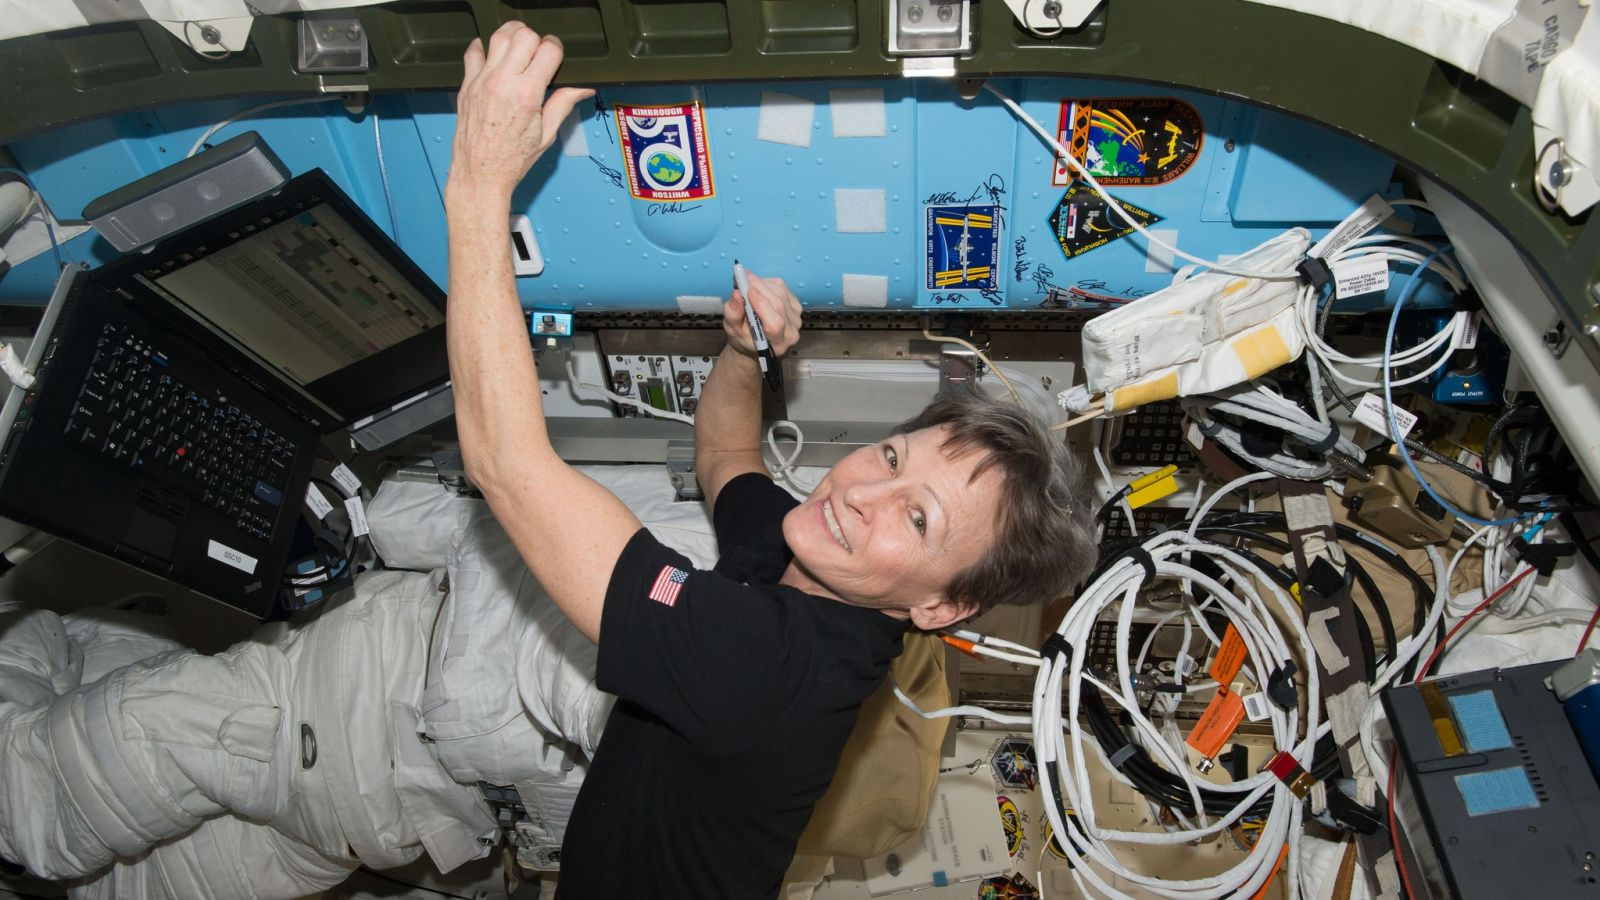 Peggy Whitson signs her name on the wall of the ISS